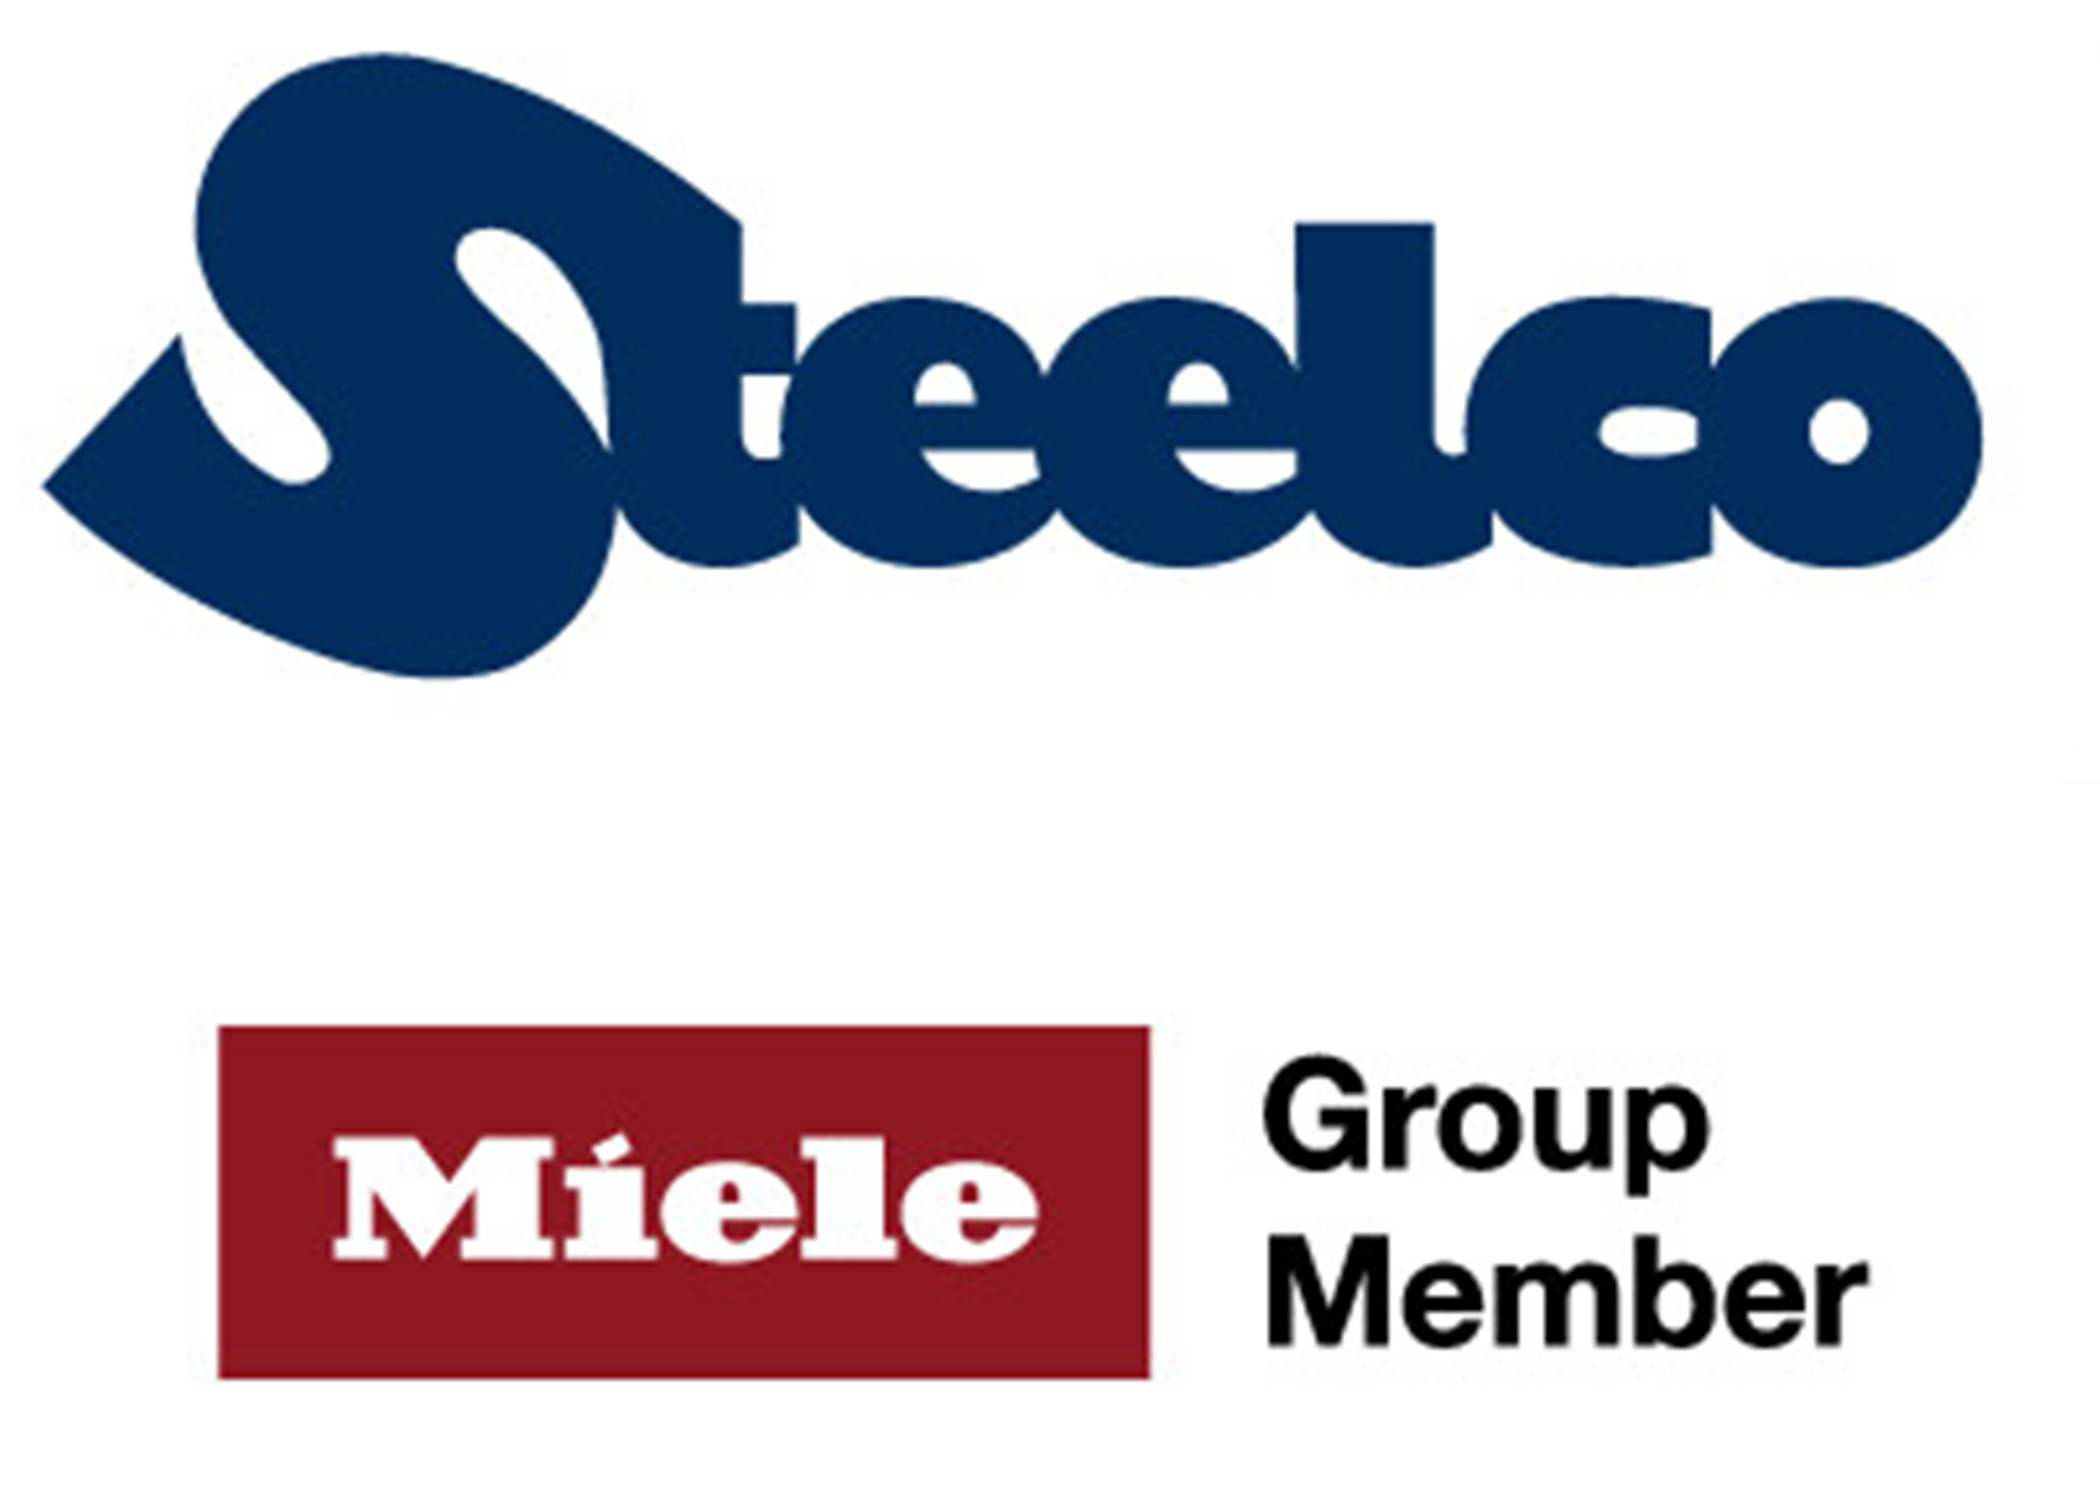 Steelco and Miele logo.